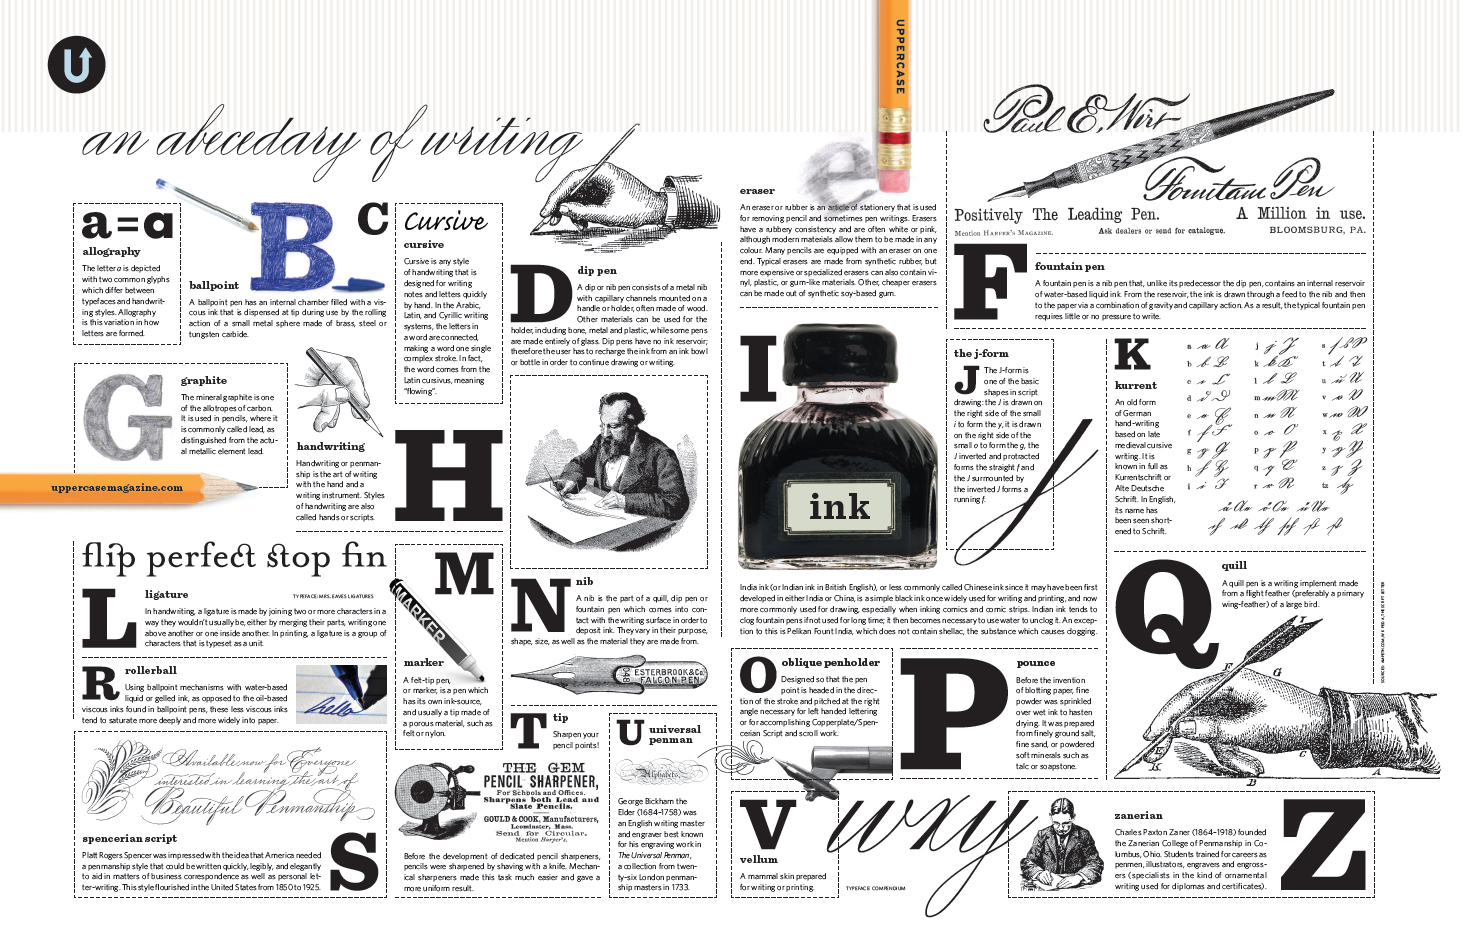 """The Abecedary of Writing"" is a beautiful poster created by UPPERCASE magazine. Download the high-resolution file for free using the button below. You can then print it yourself as an 11x17-inch poster!"